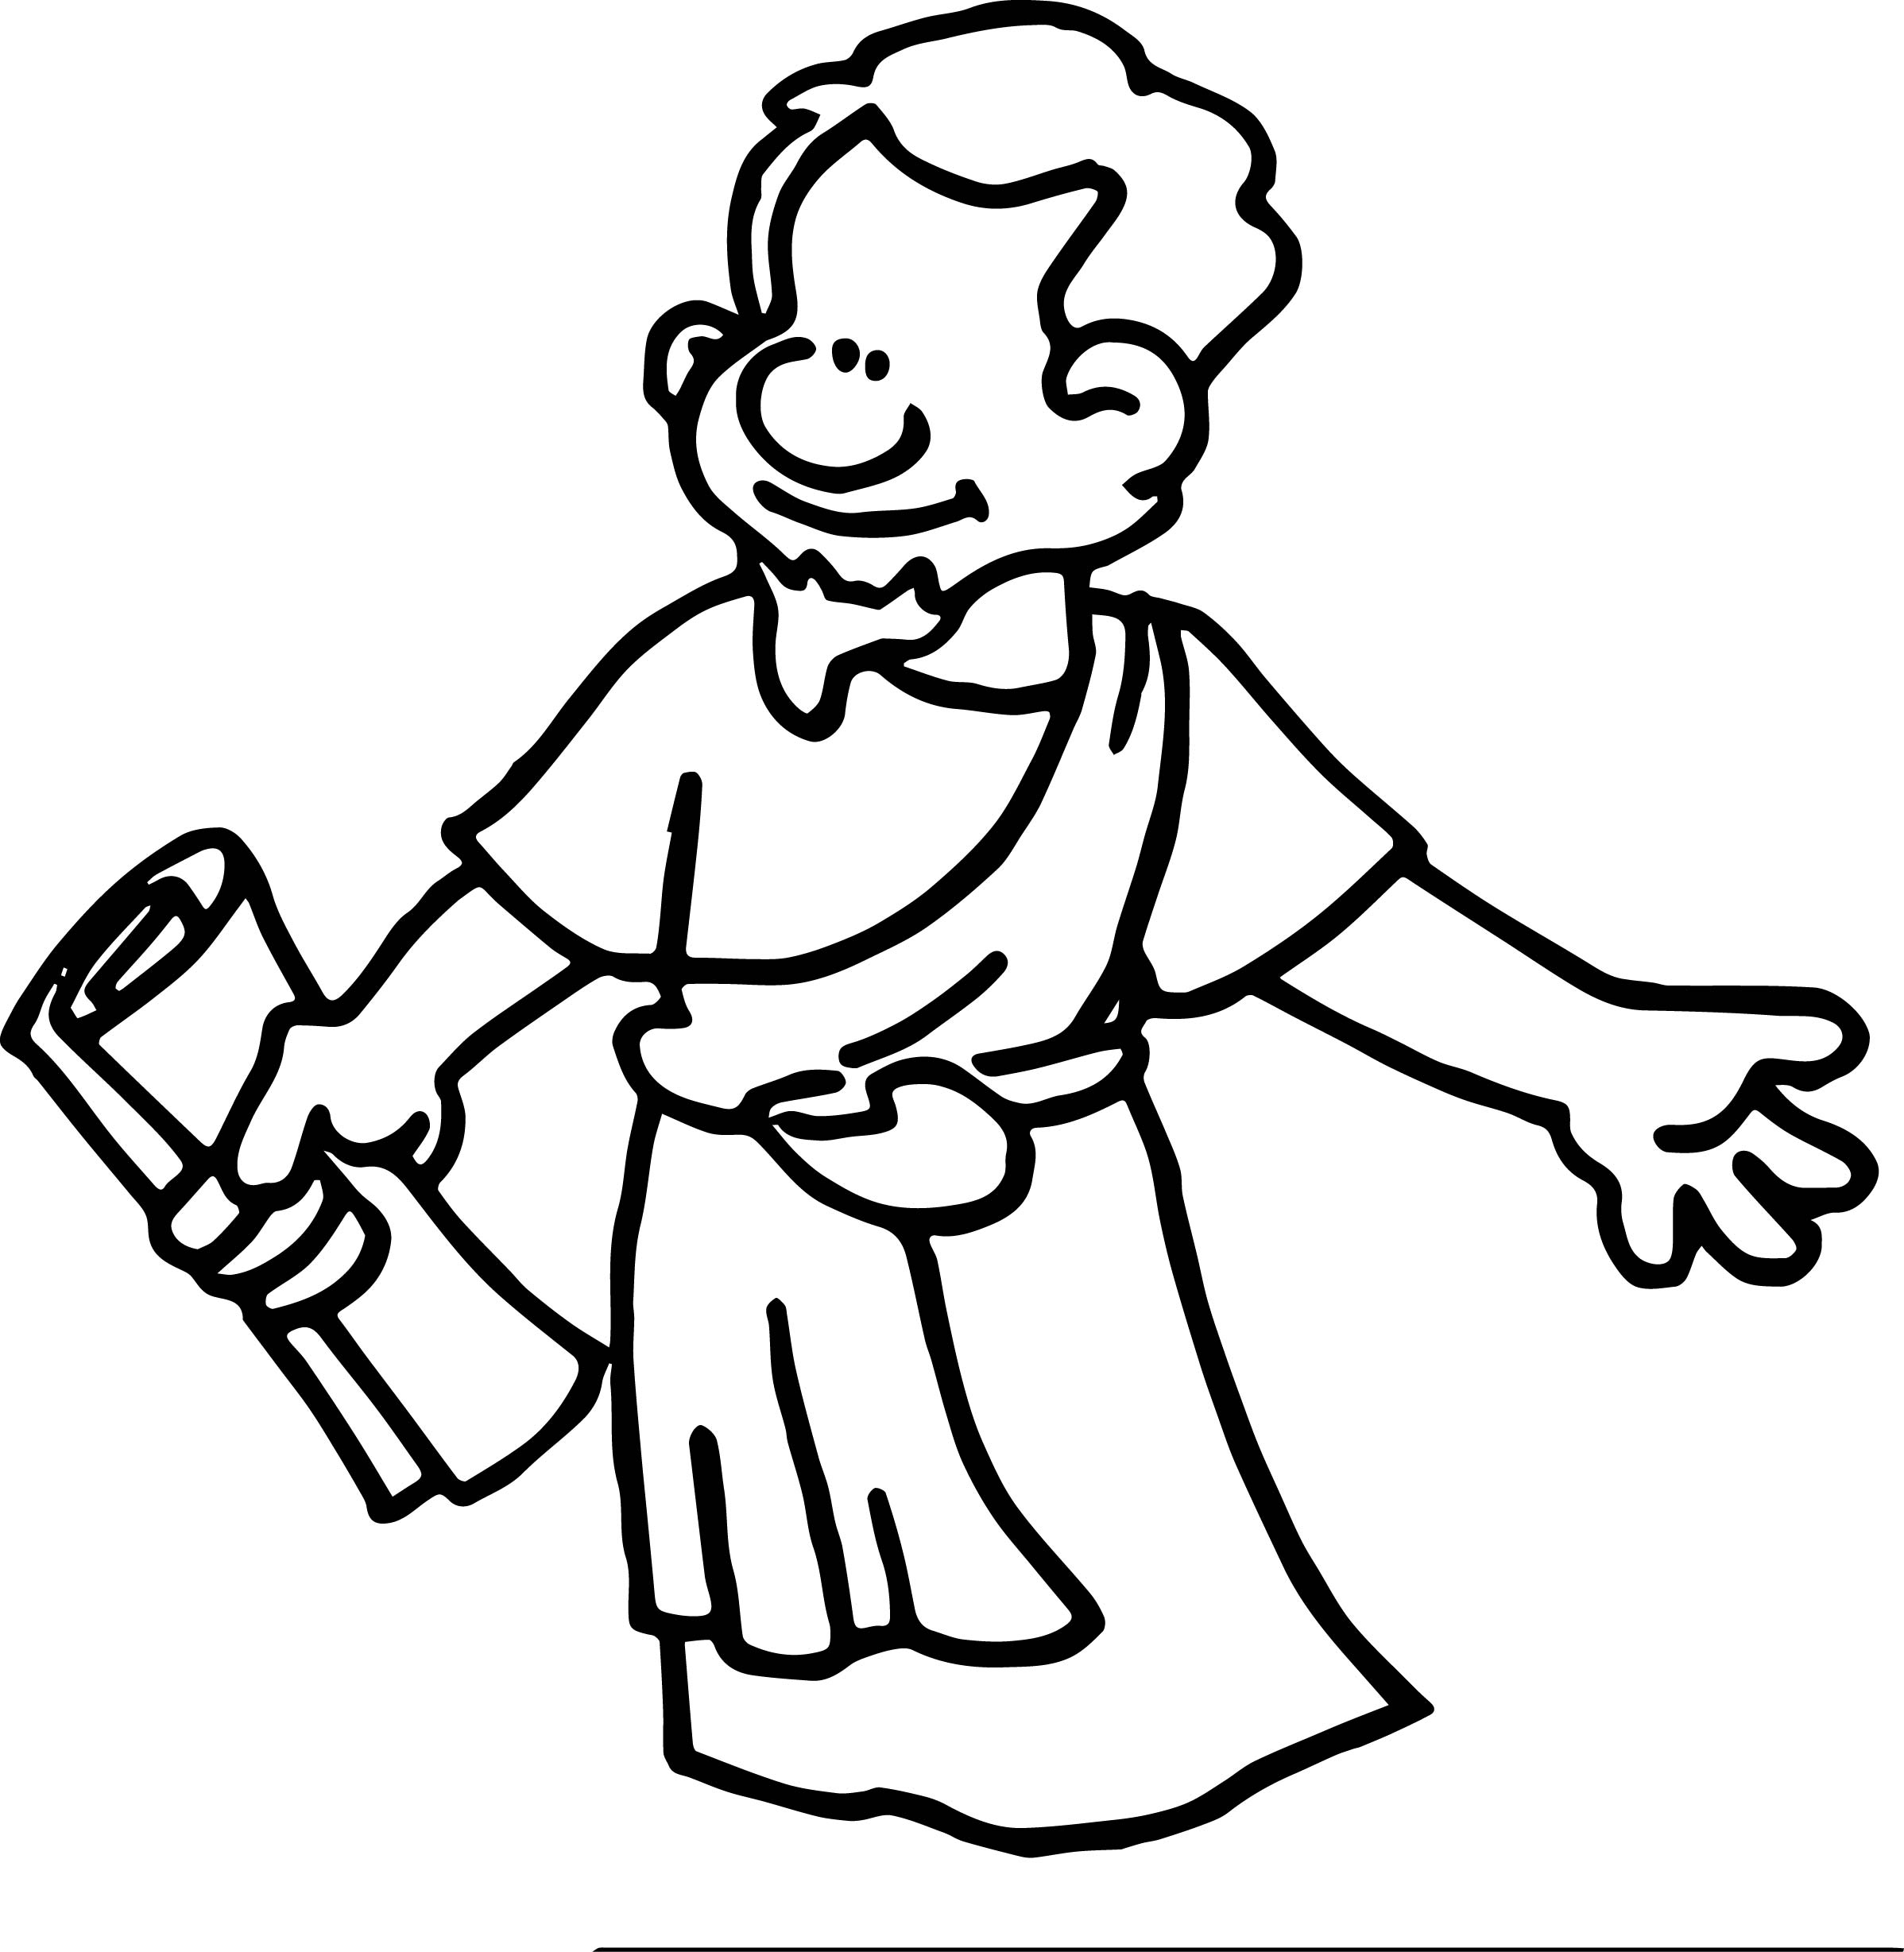 Apostle Paper Coloring Page